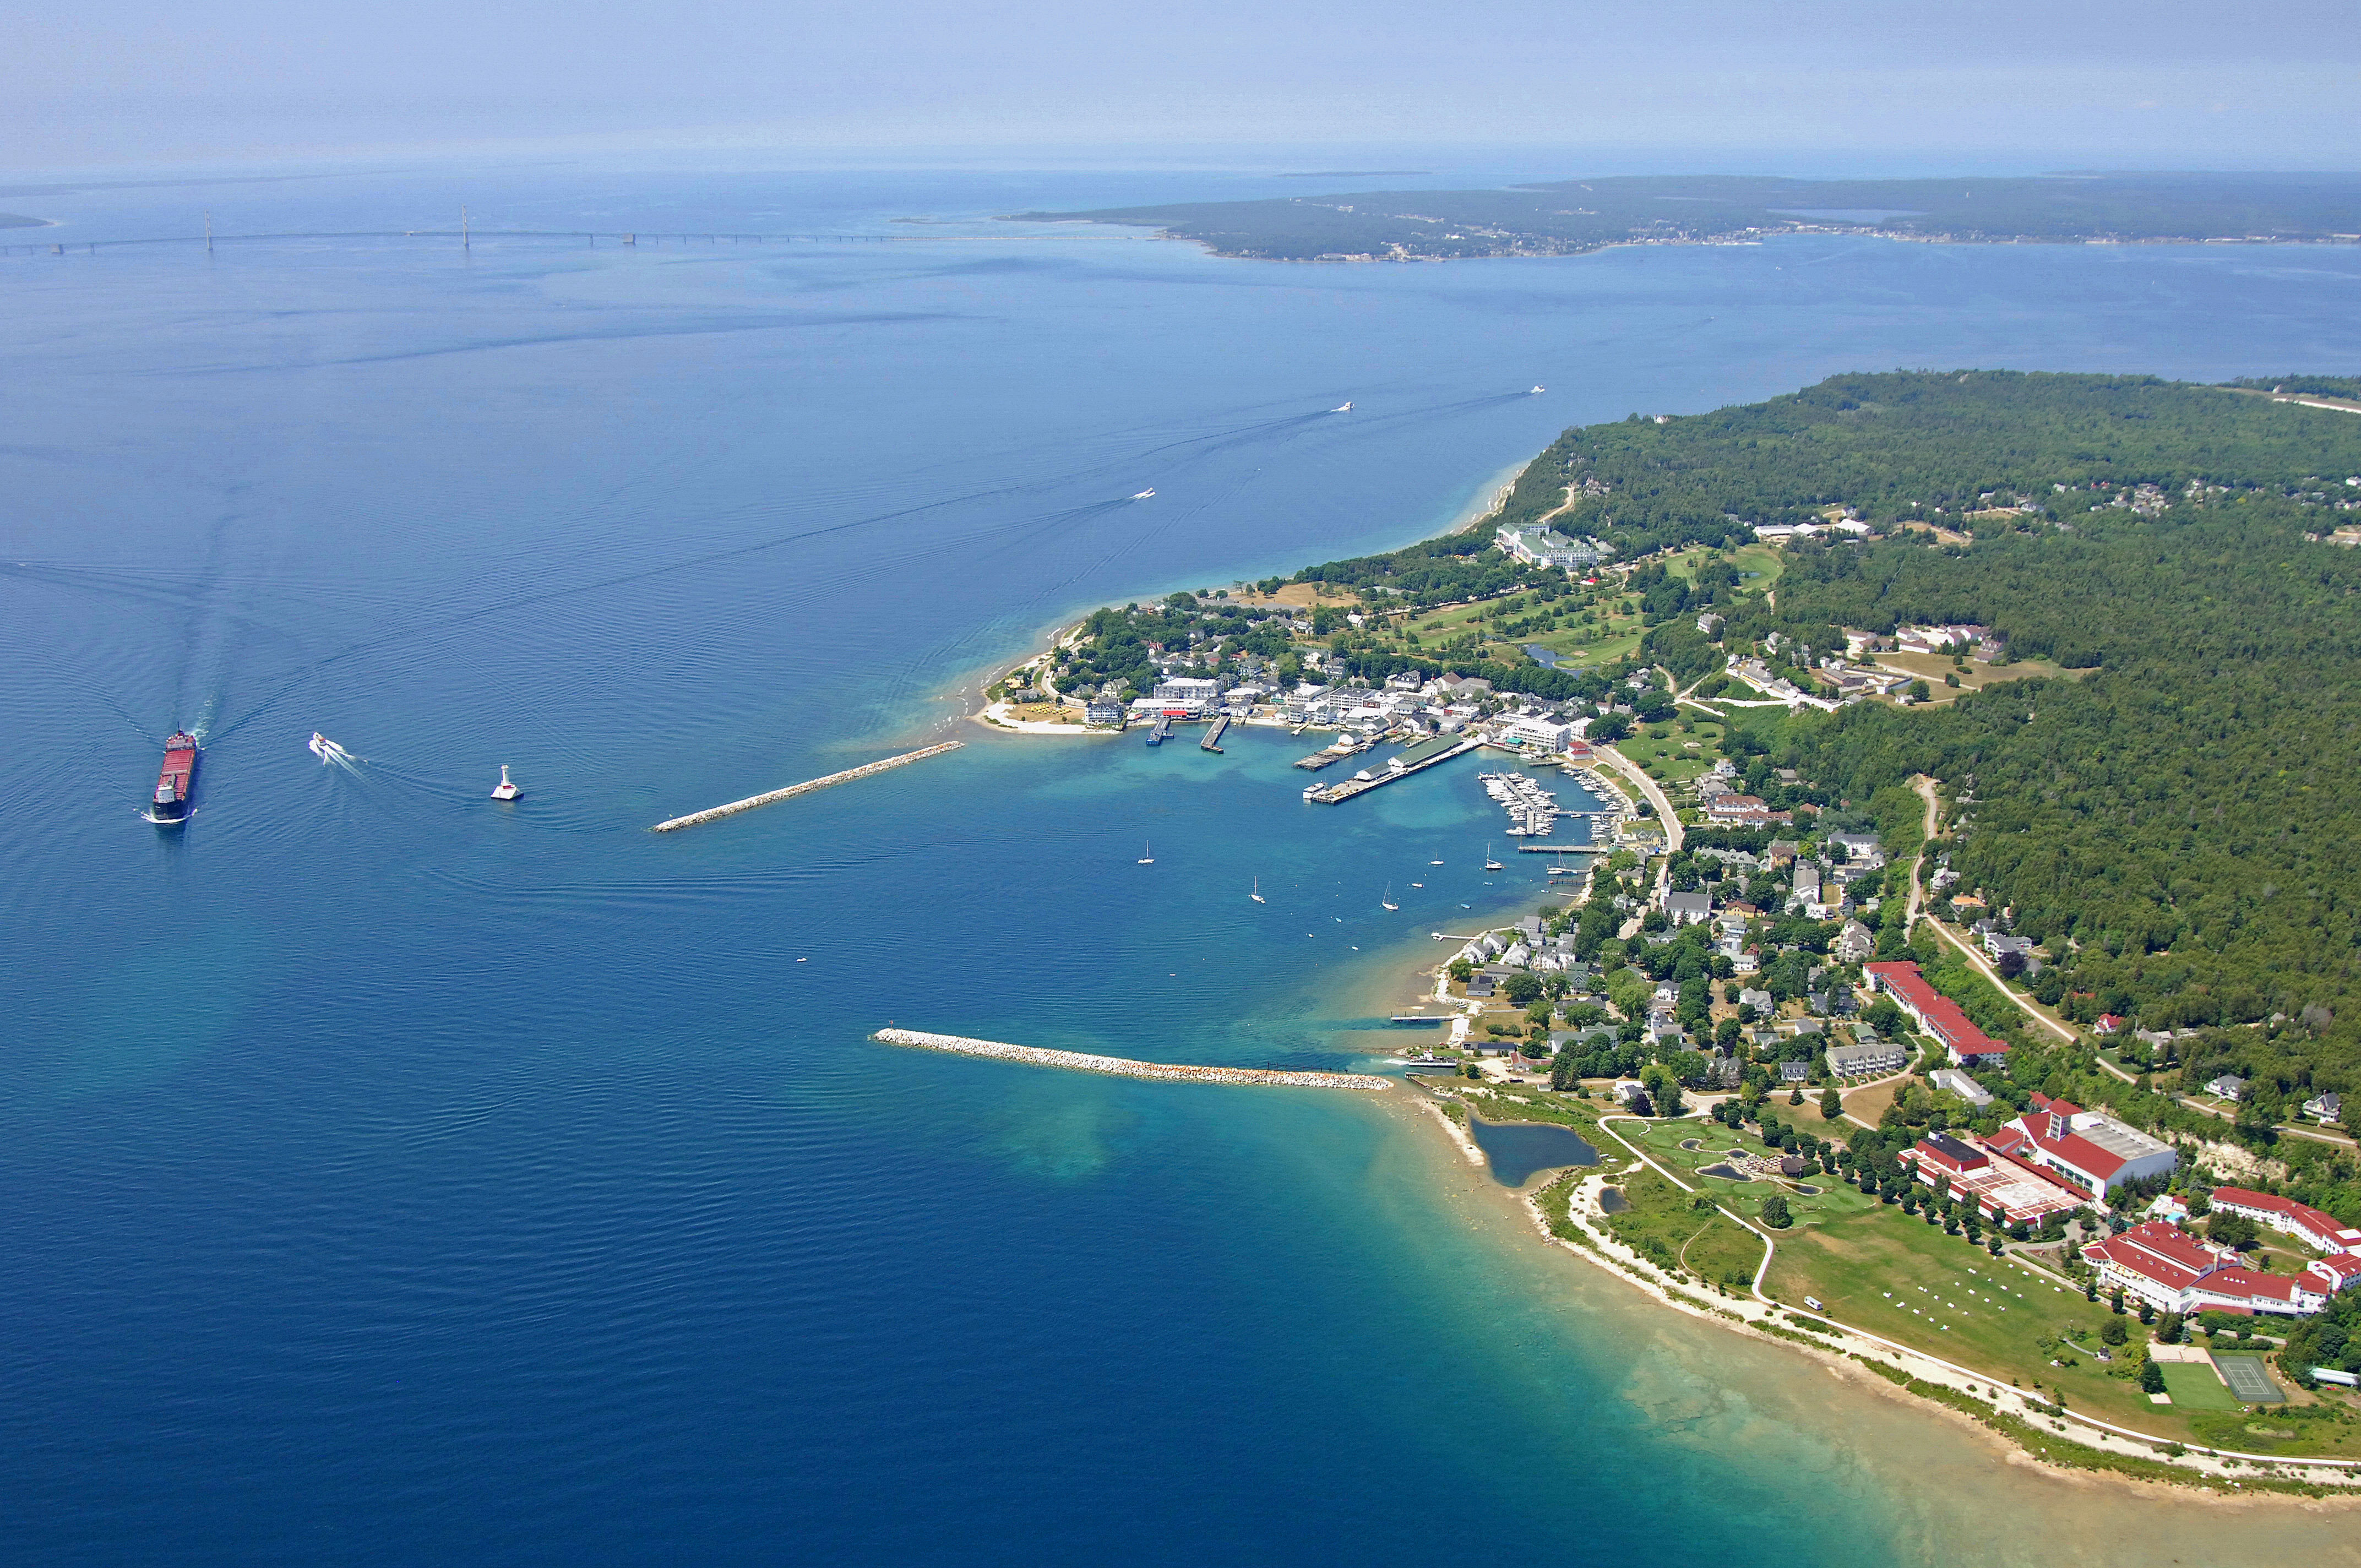 a recommendation for visiting mackinaw island On behalf of our entire crew in mackinaw city, st ignace, and the island  but it offers a nice scenic visit to the island in relative comfort with great views.